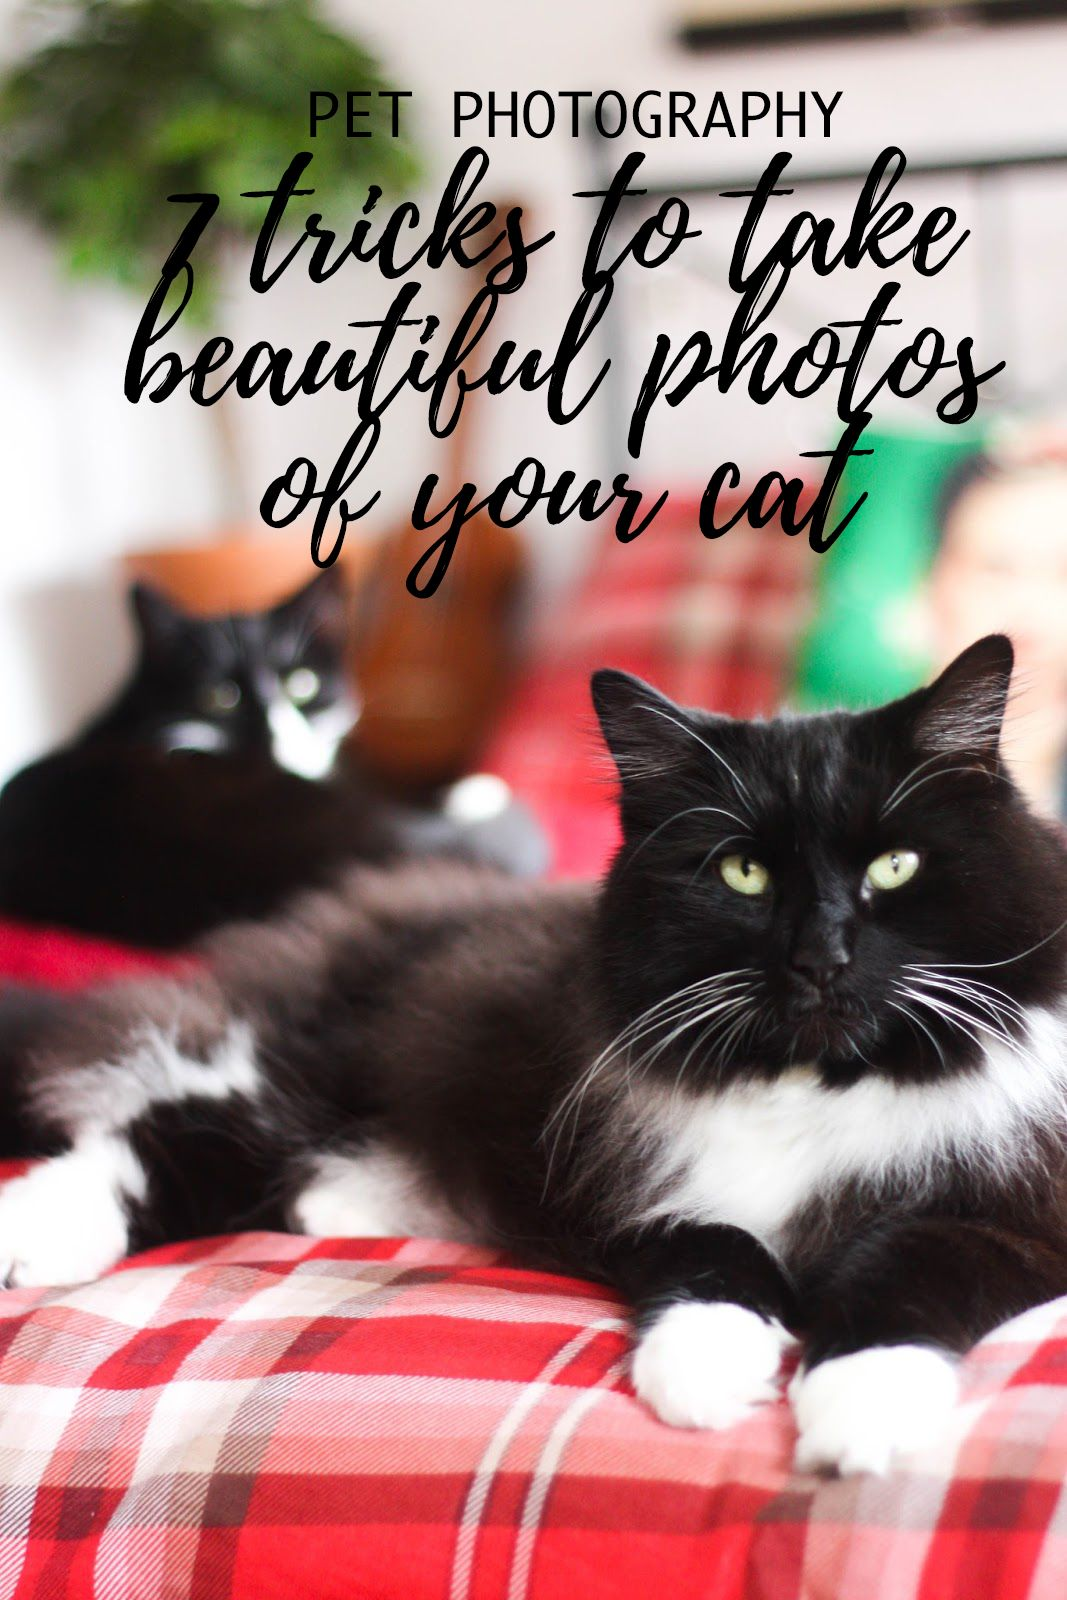 Pet Photography 7 Tricks To Take Beautiful Pictures Of Your Cat Cityscape Bliss Naughty Felines Cat Photography Black And W Cats Pets Animal Photography